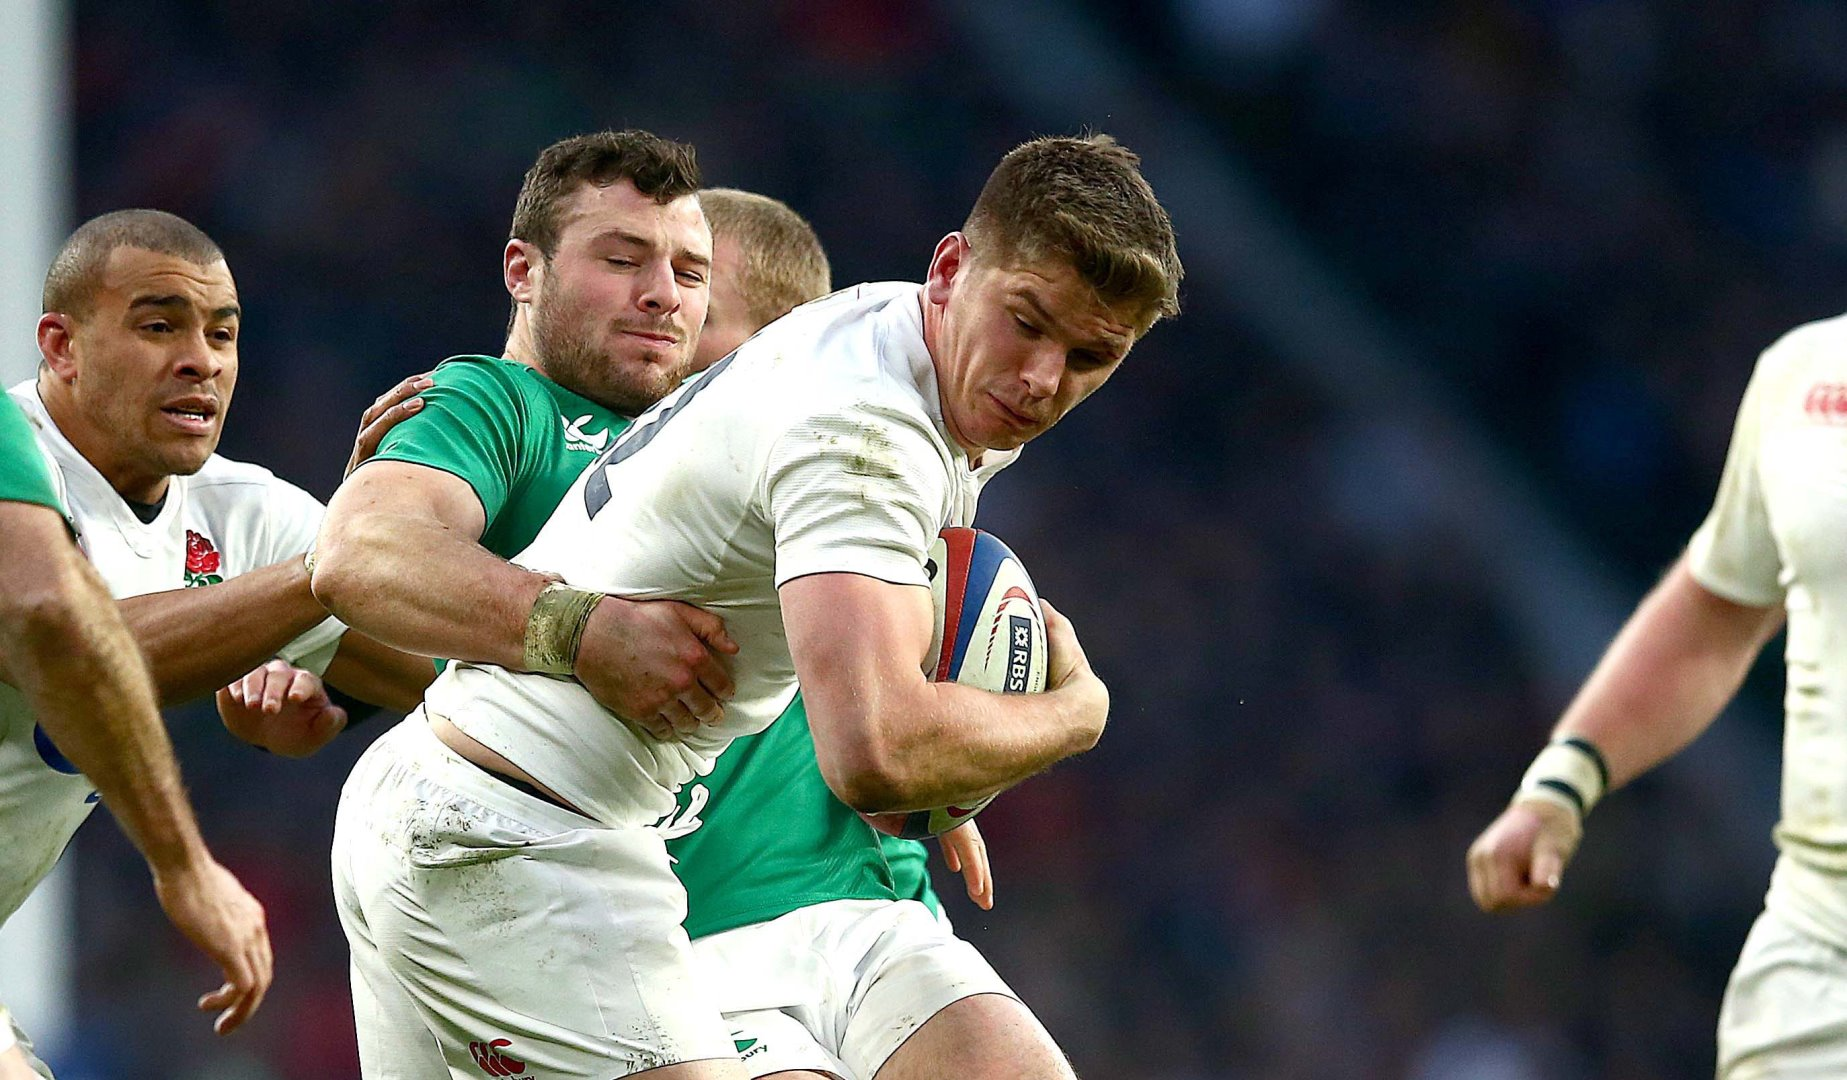 LionsWatch: Focus on Inside Centres